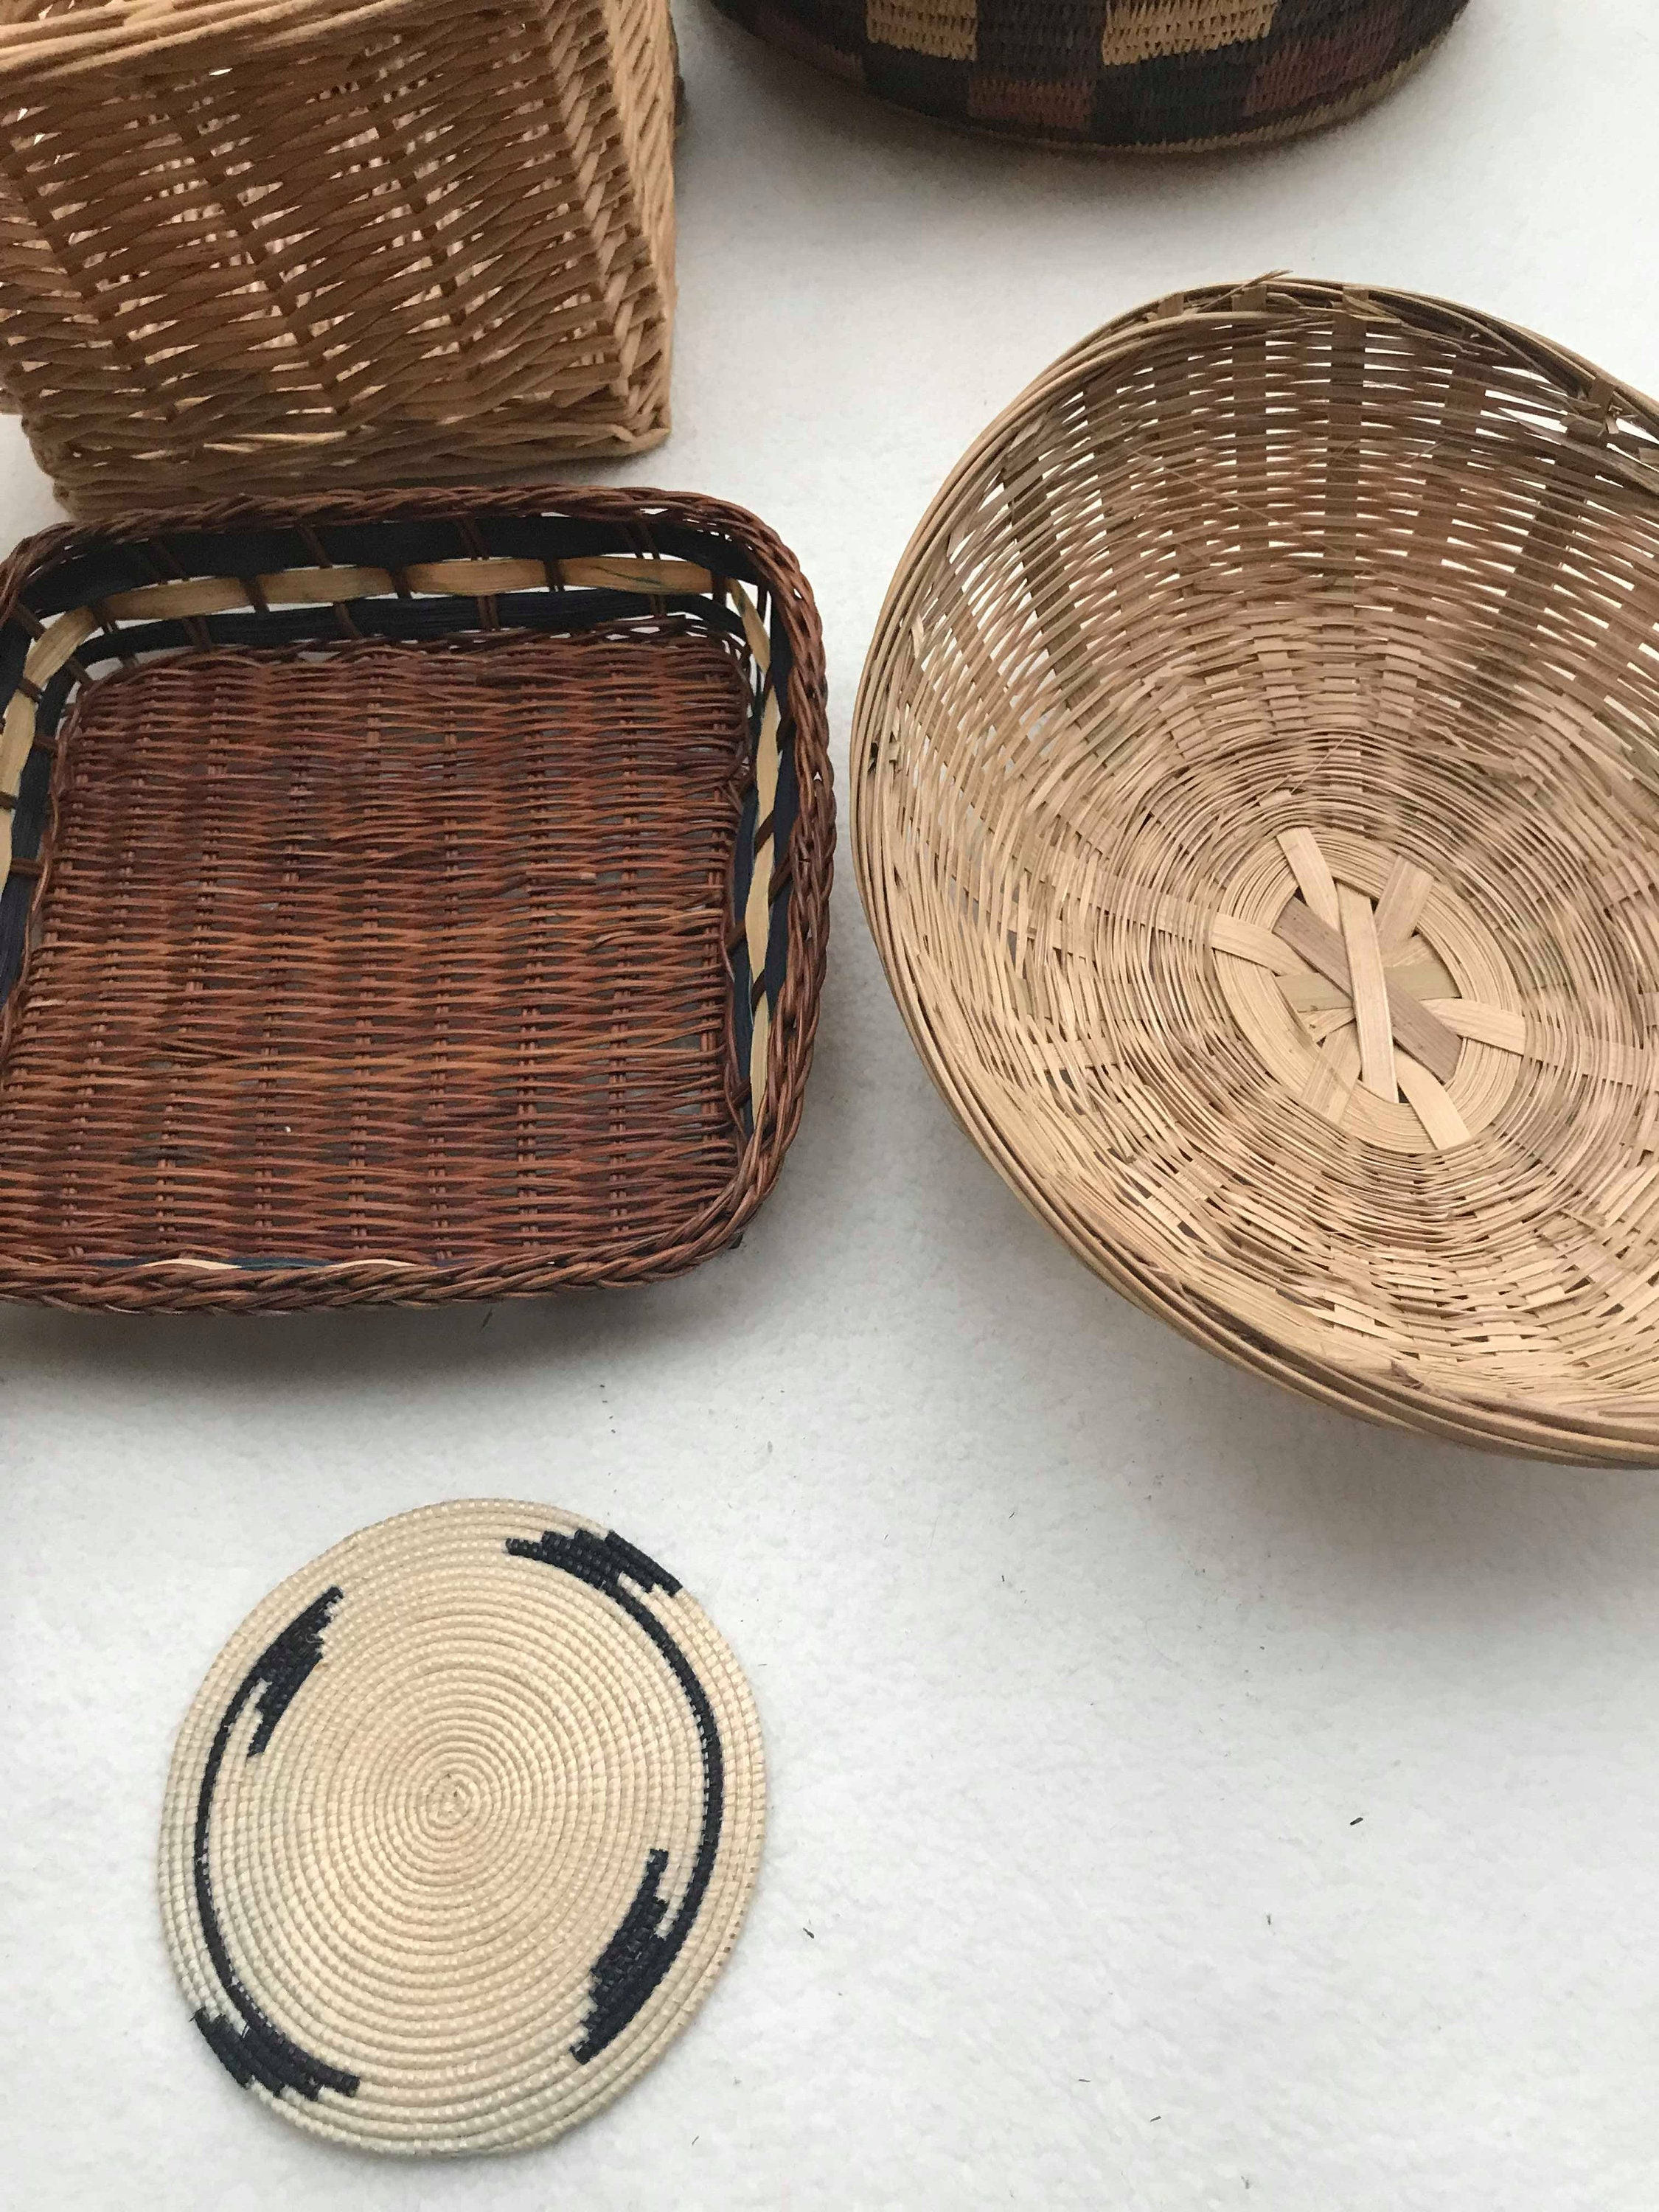 Fresh African Woven Baskets Collection Of Basket Decorative